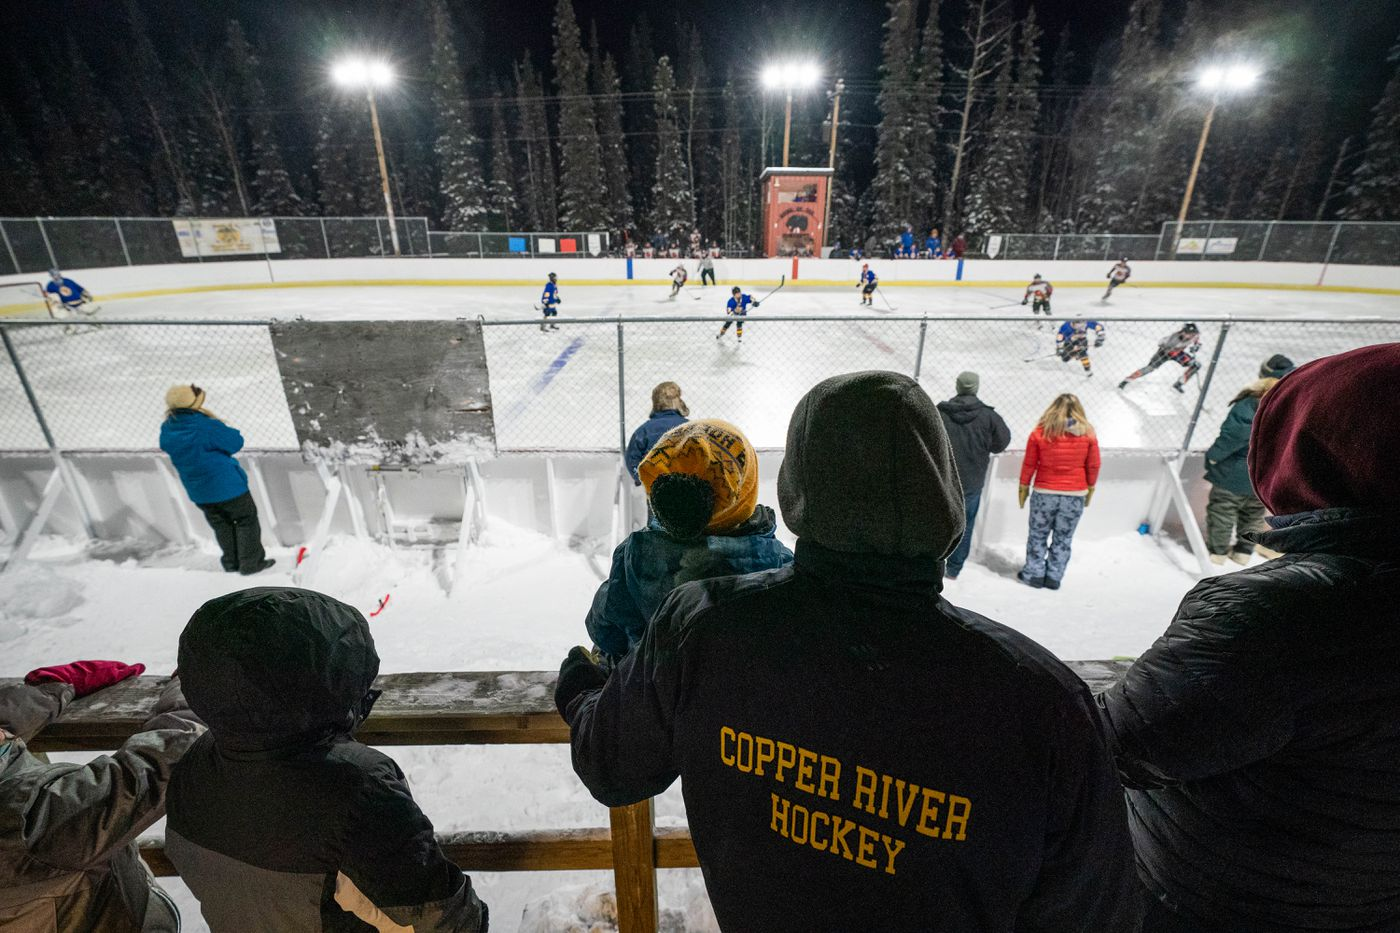 Spectators watch a hockey game in minus 10 temperatures. A game last month was cancelled when the temperature dipped to minus 31. (Loren Holmes / ADN)